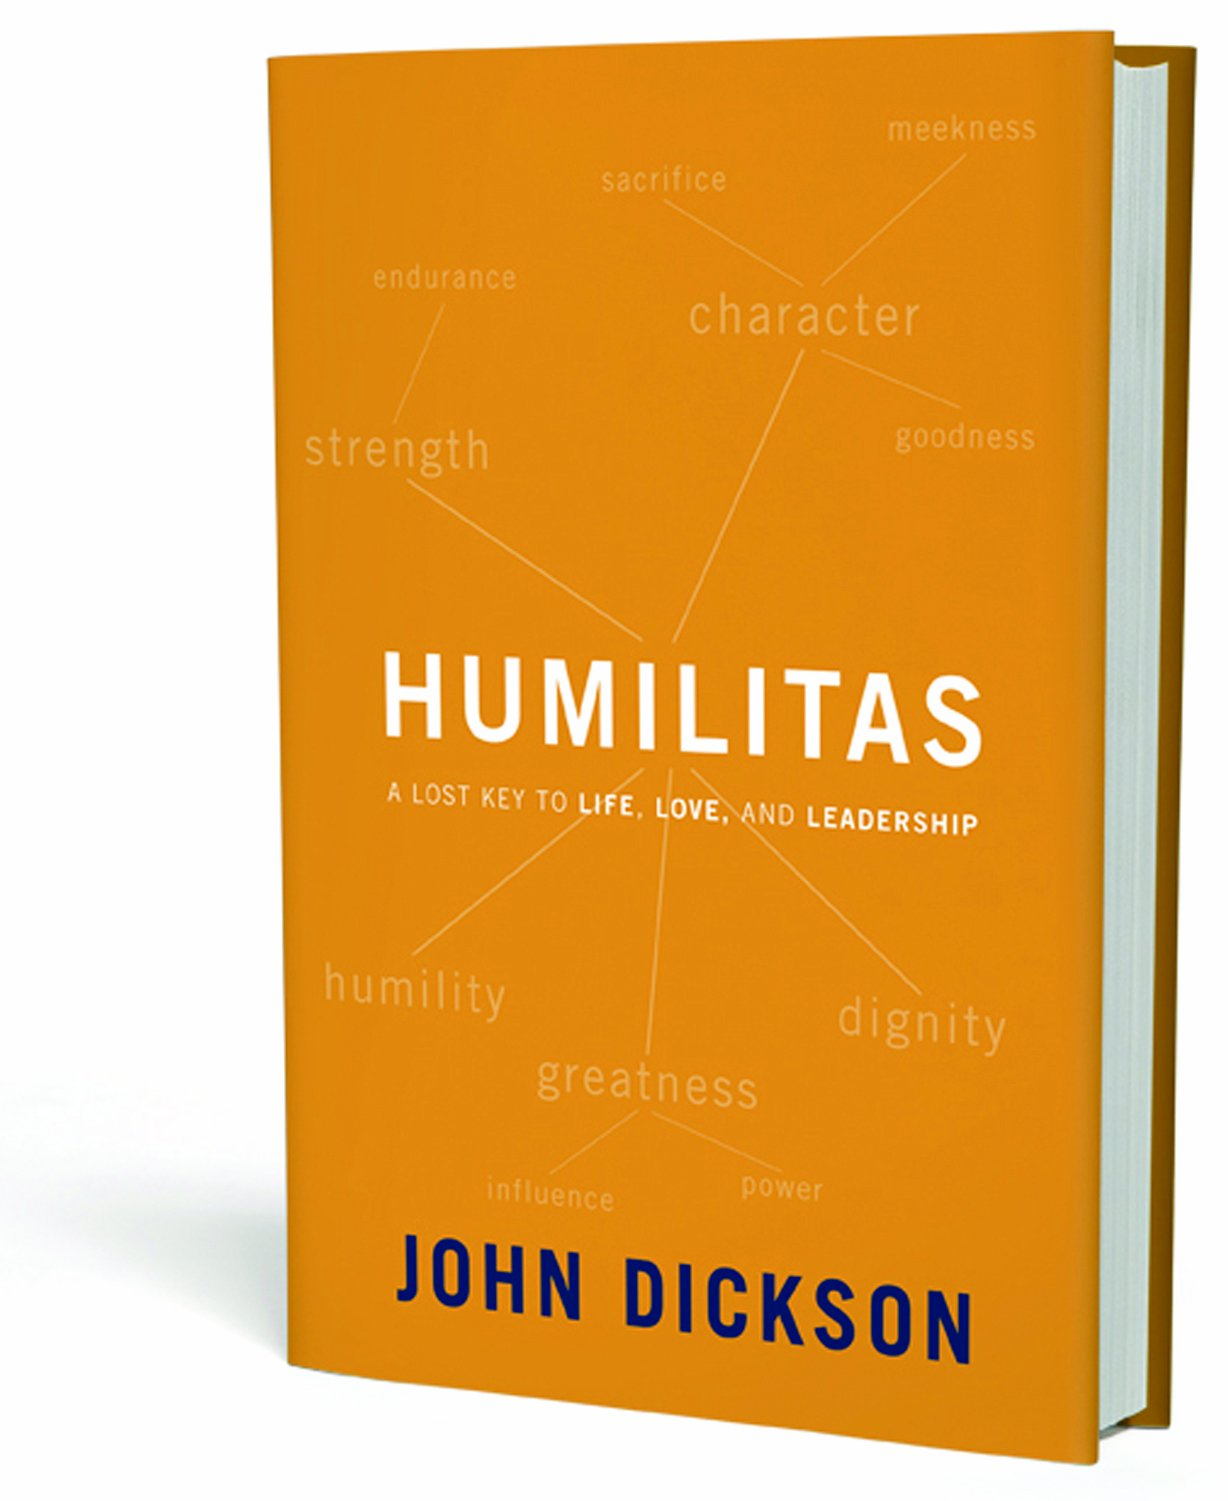 Humilitas - Through the lessons of history, business, and the social sciences, John Dickson shows that humility is not low self-esteem, grovelling, or losing our distinct gifts. Instead, humility both recognises our inherent worth and seeks to use whatever power we have at our disposal on behalf of others.Click here to purchase from Koorong